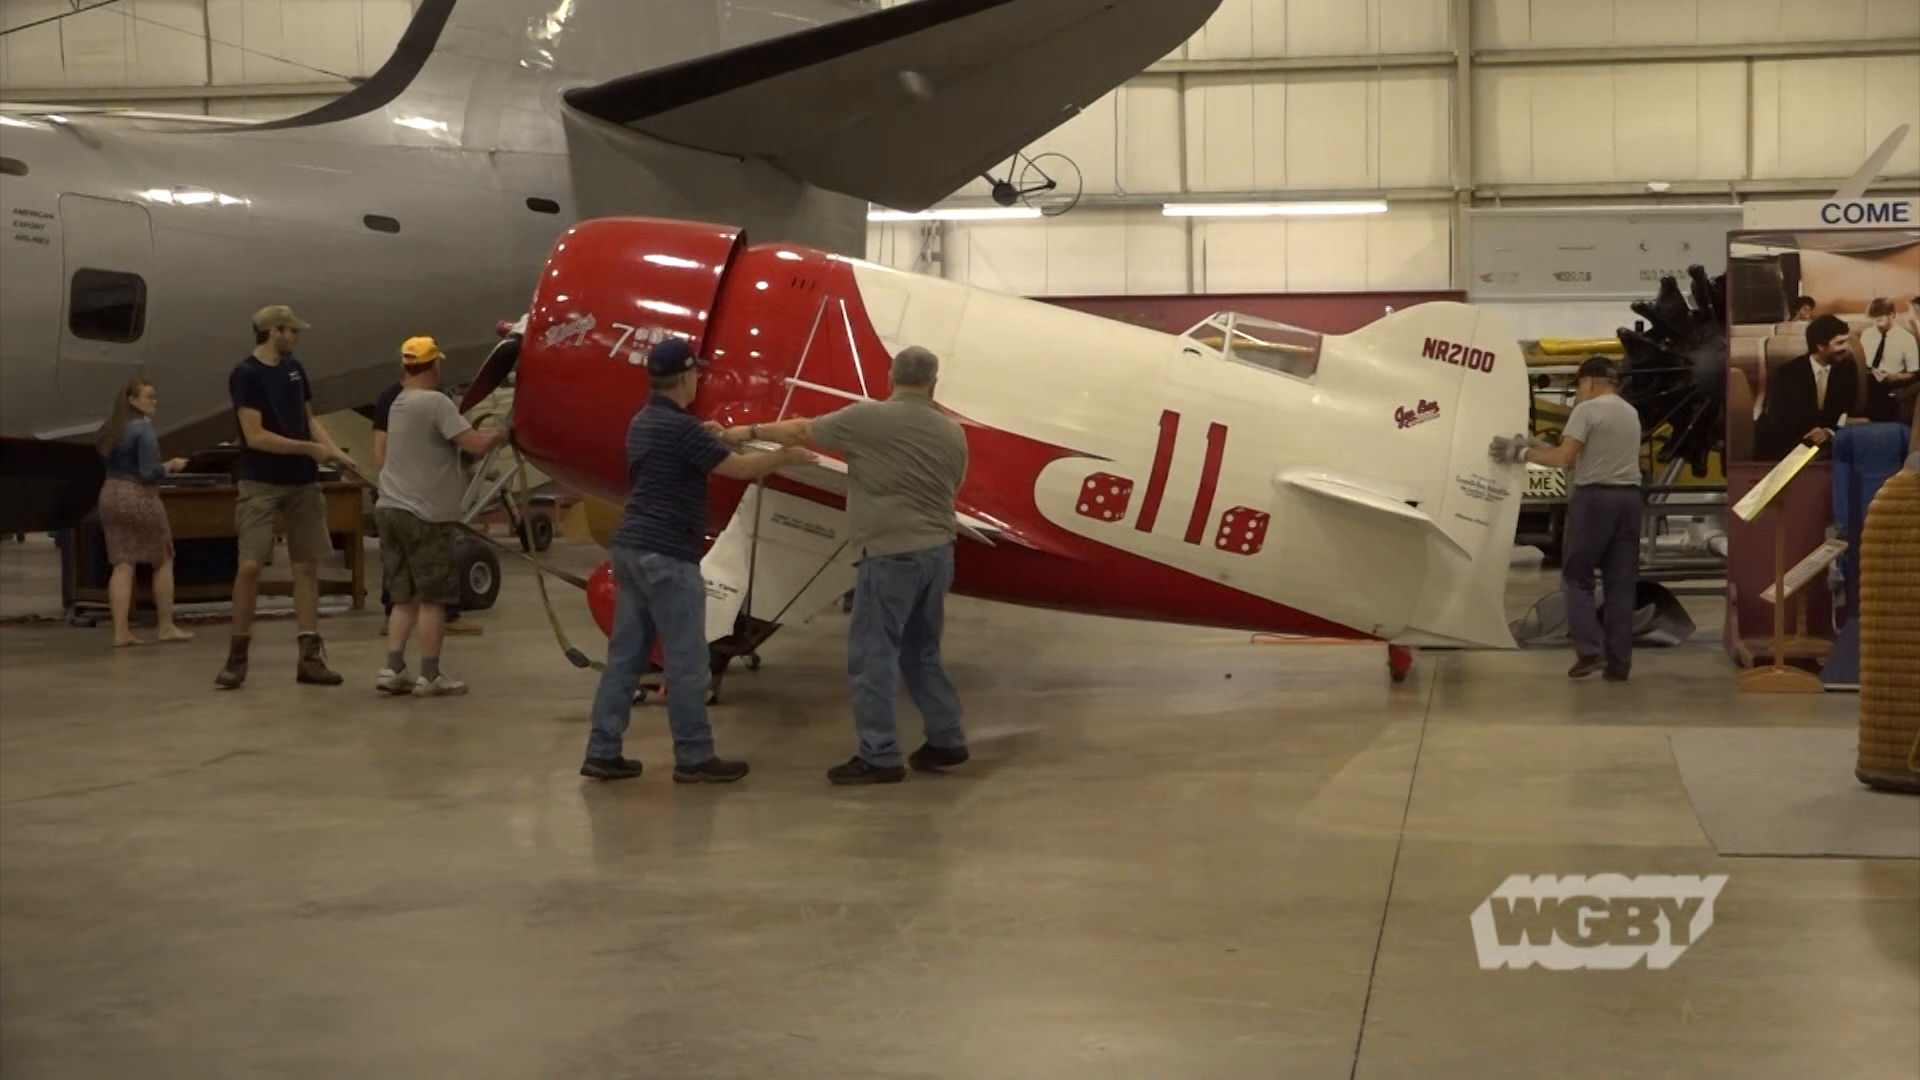 Peek behind the curtain and see how a dedicated group of volunteers painstakingly restores the exhibits at the New England Air Museum in Windsor Locks, CT.